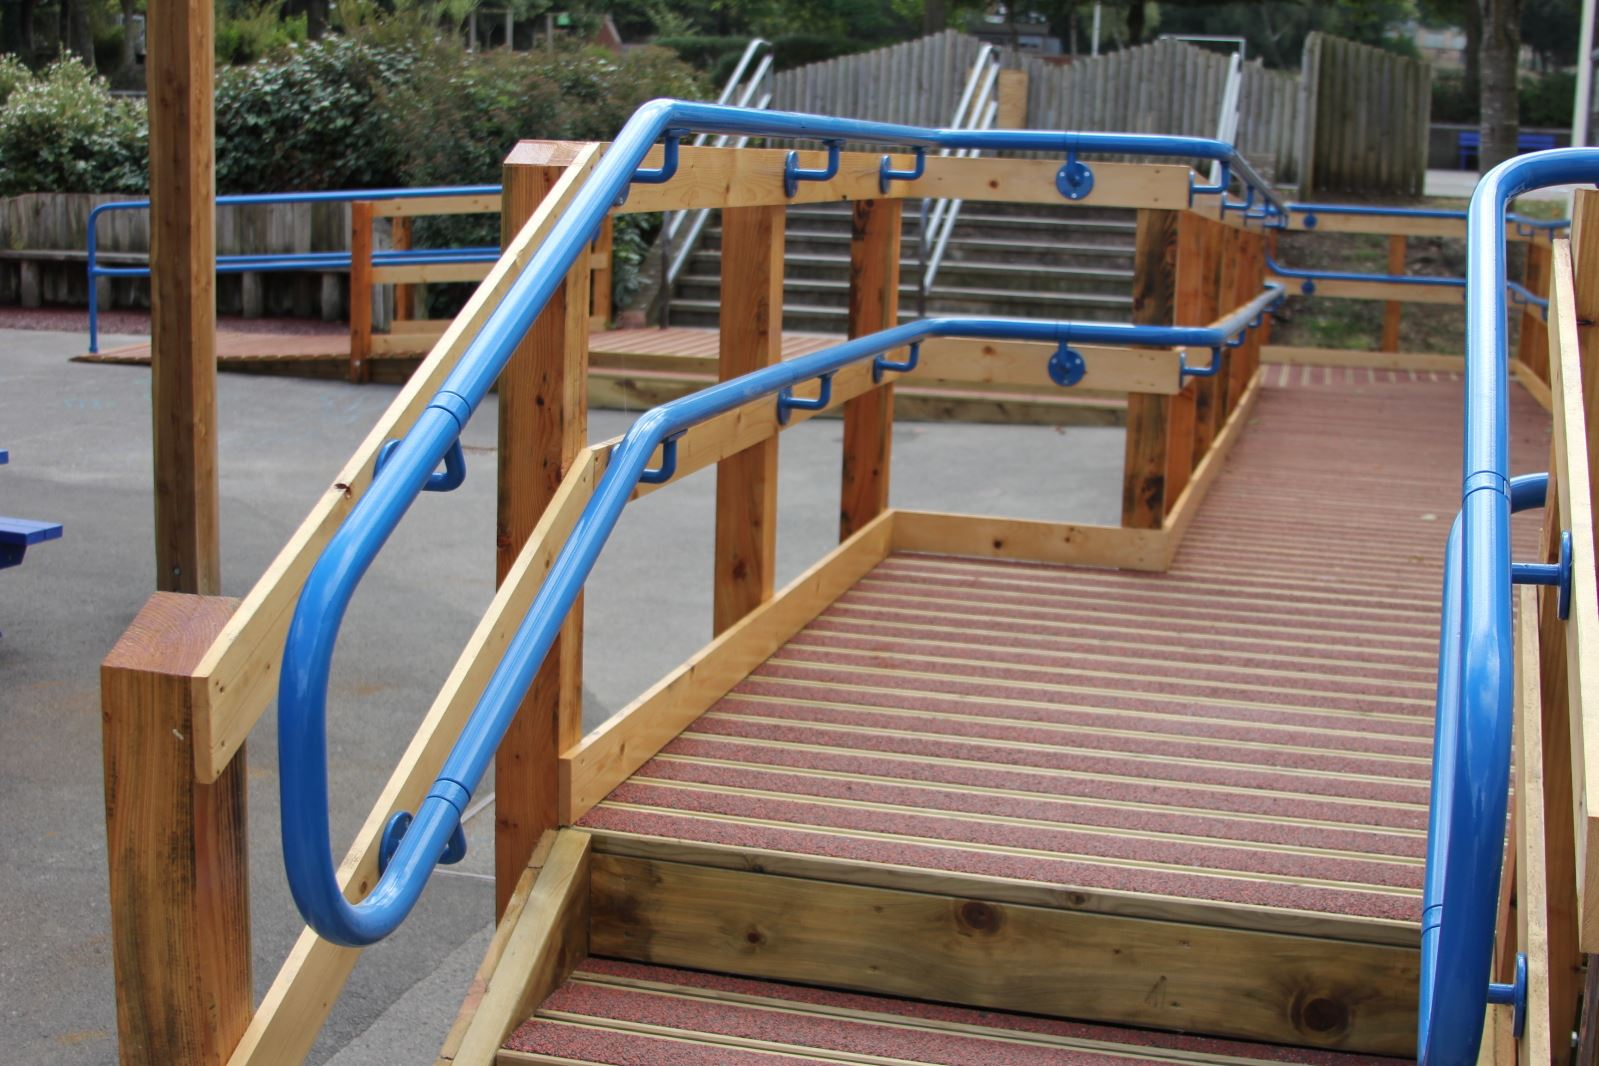 Disability Portable Handrails : Interclamp assist for disabled handrailing and ramp